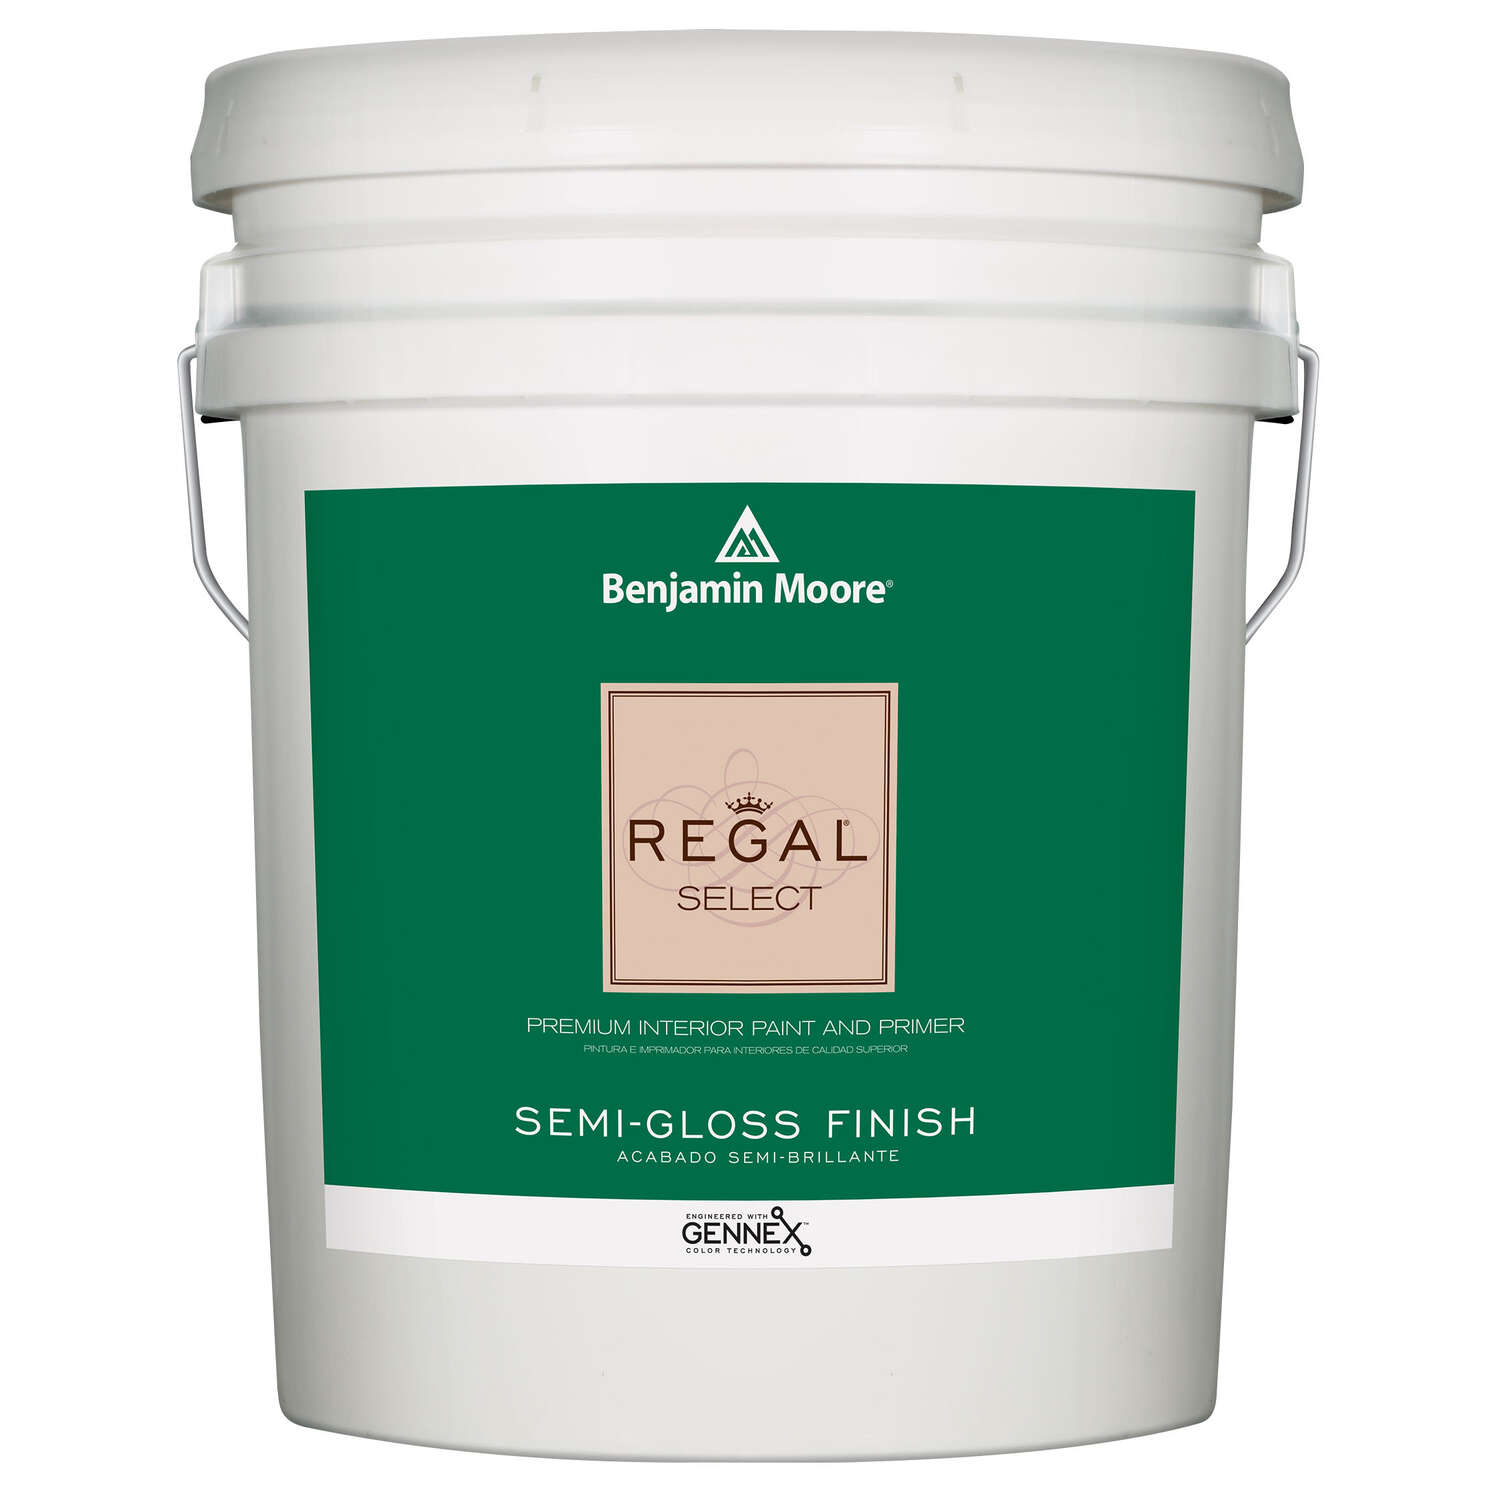 Benjamin Moore  Regal Select  Semi-Gloss  Base 1  Paint and Primer  Interior  5 gal.